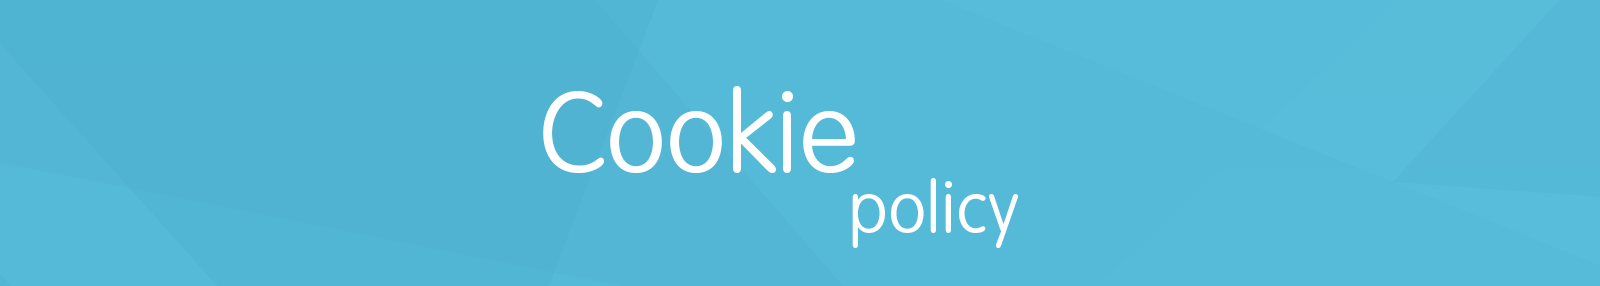 Cookie Policy Header